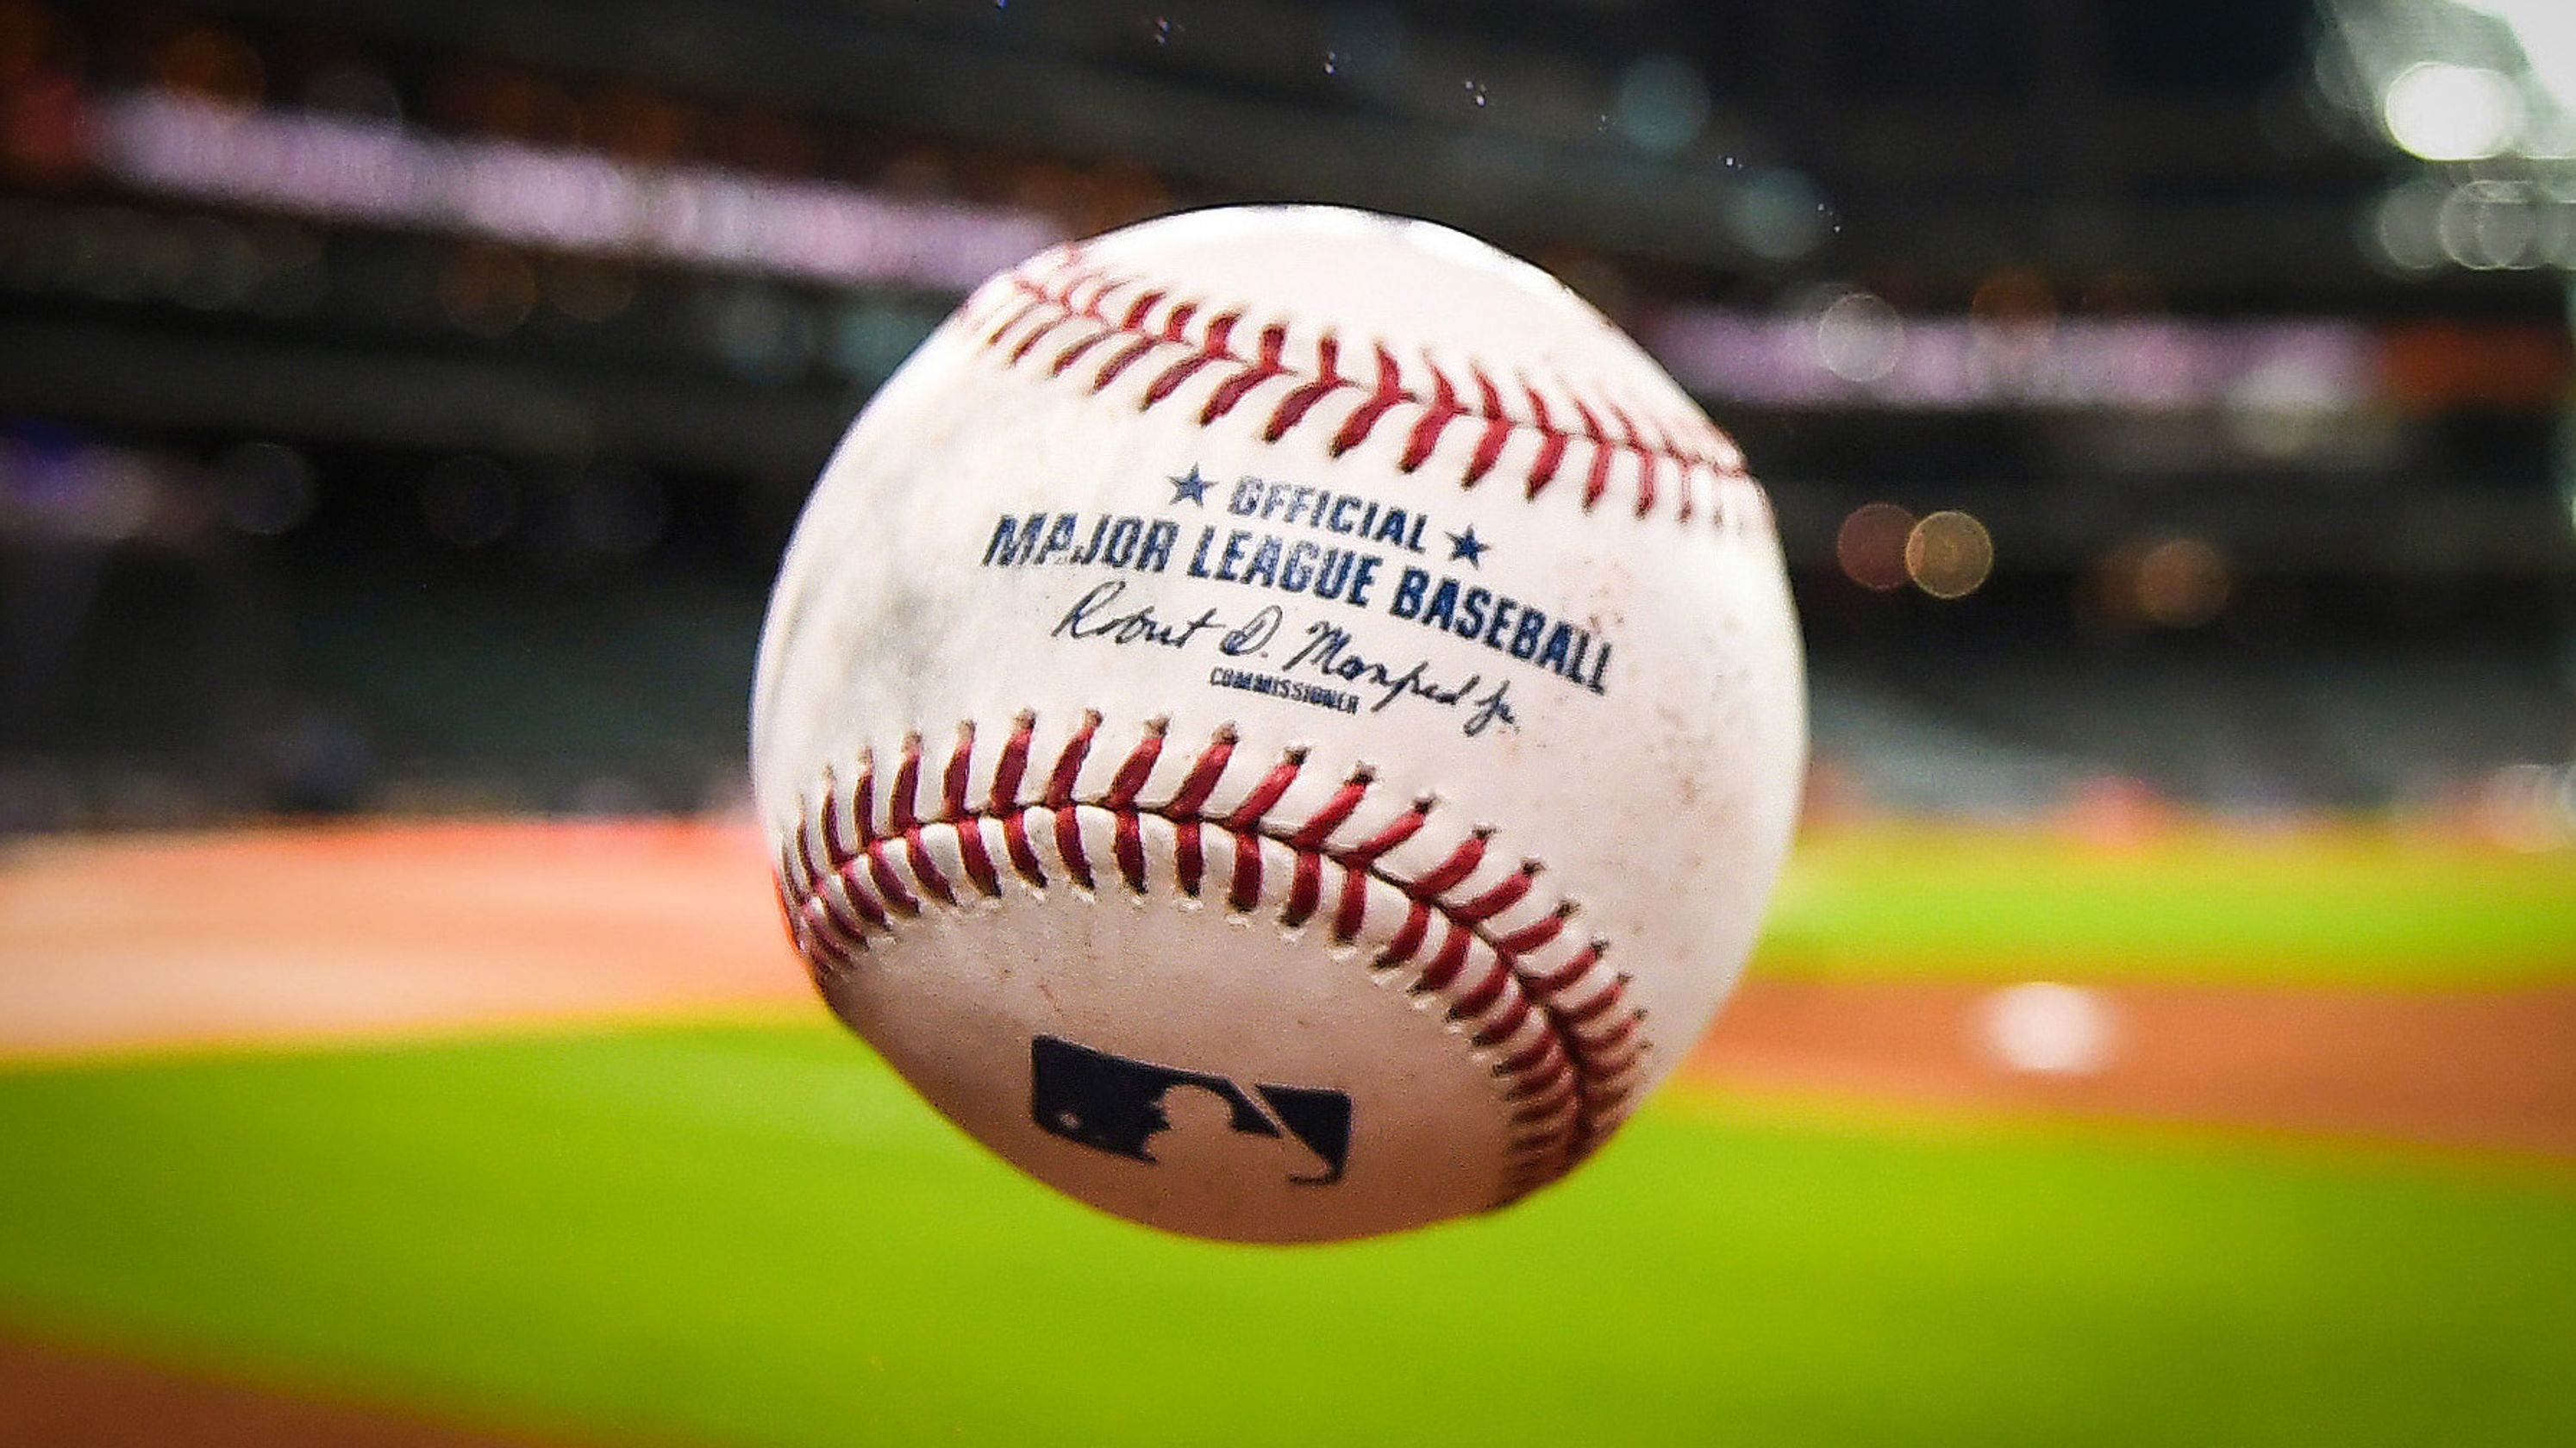 Mlb Union Discussing Dramatic Rule Changes Major Baseball Kyle Schwarber Usa Today Sports